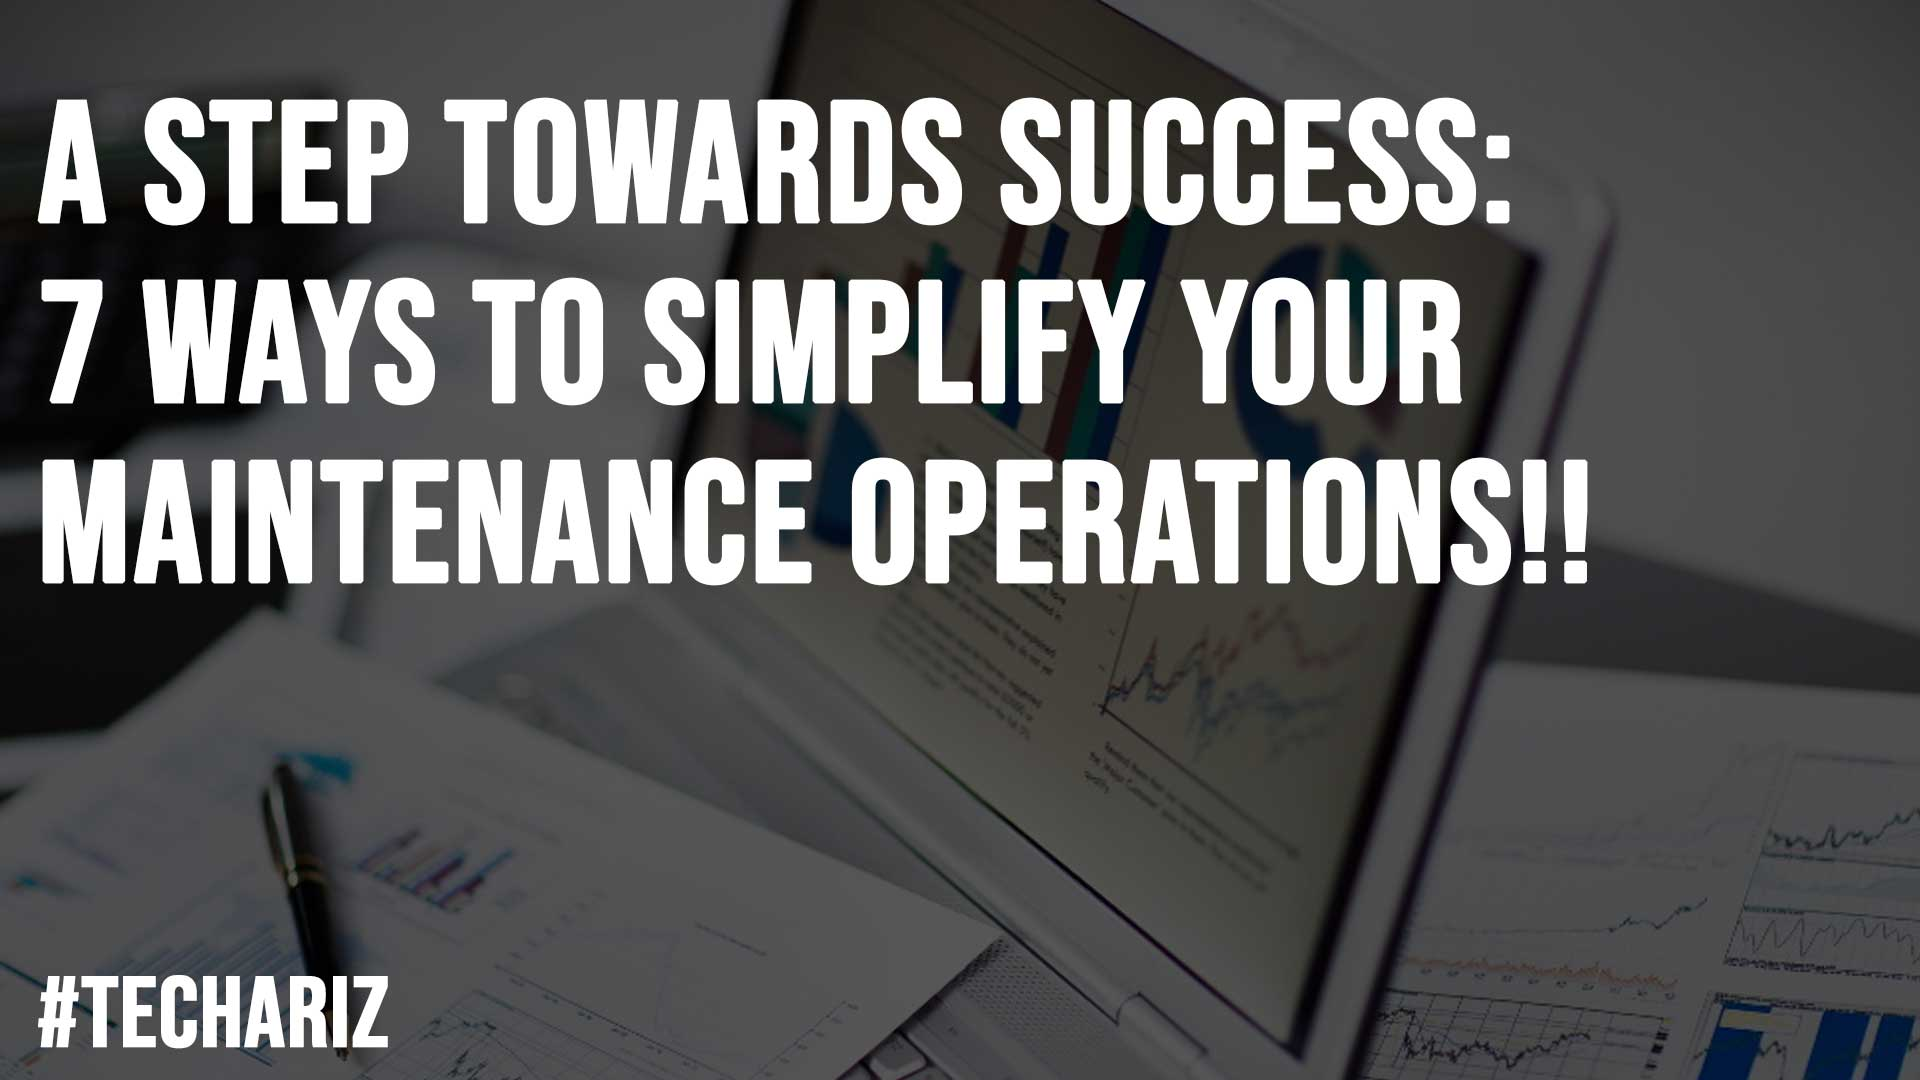 A Step Towards Success 7 Ways To Simplify Your Maintenance Operations